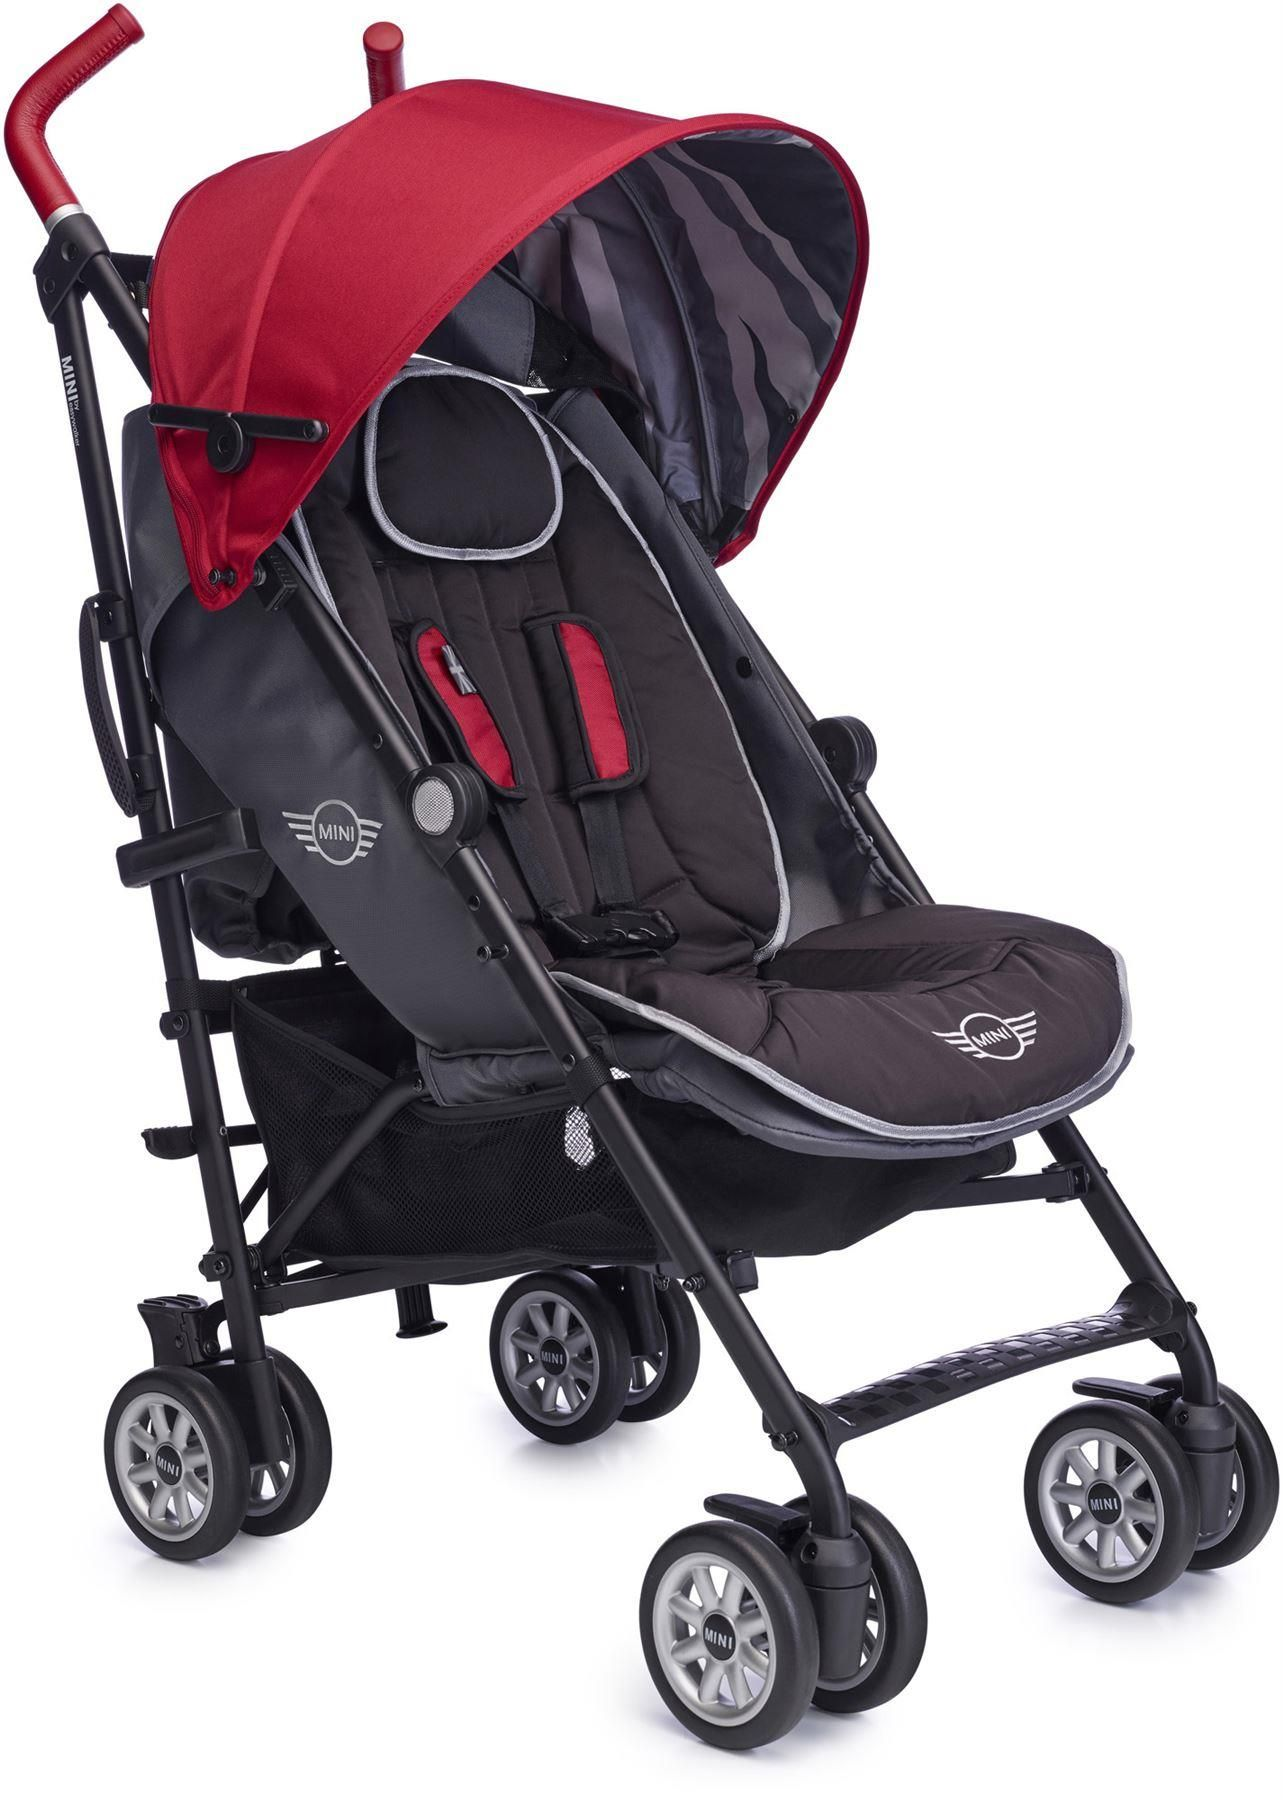 Kinderwagen Easywalker Duo Easywalker Mini Buggy Xl Union Red Products In 2019